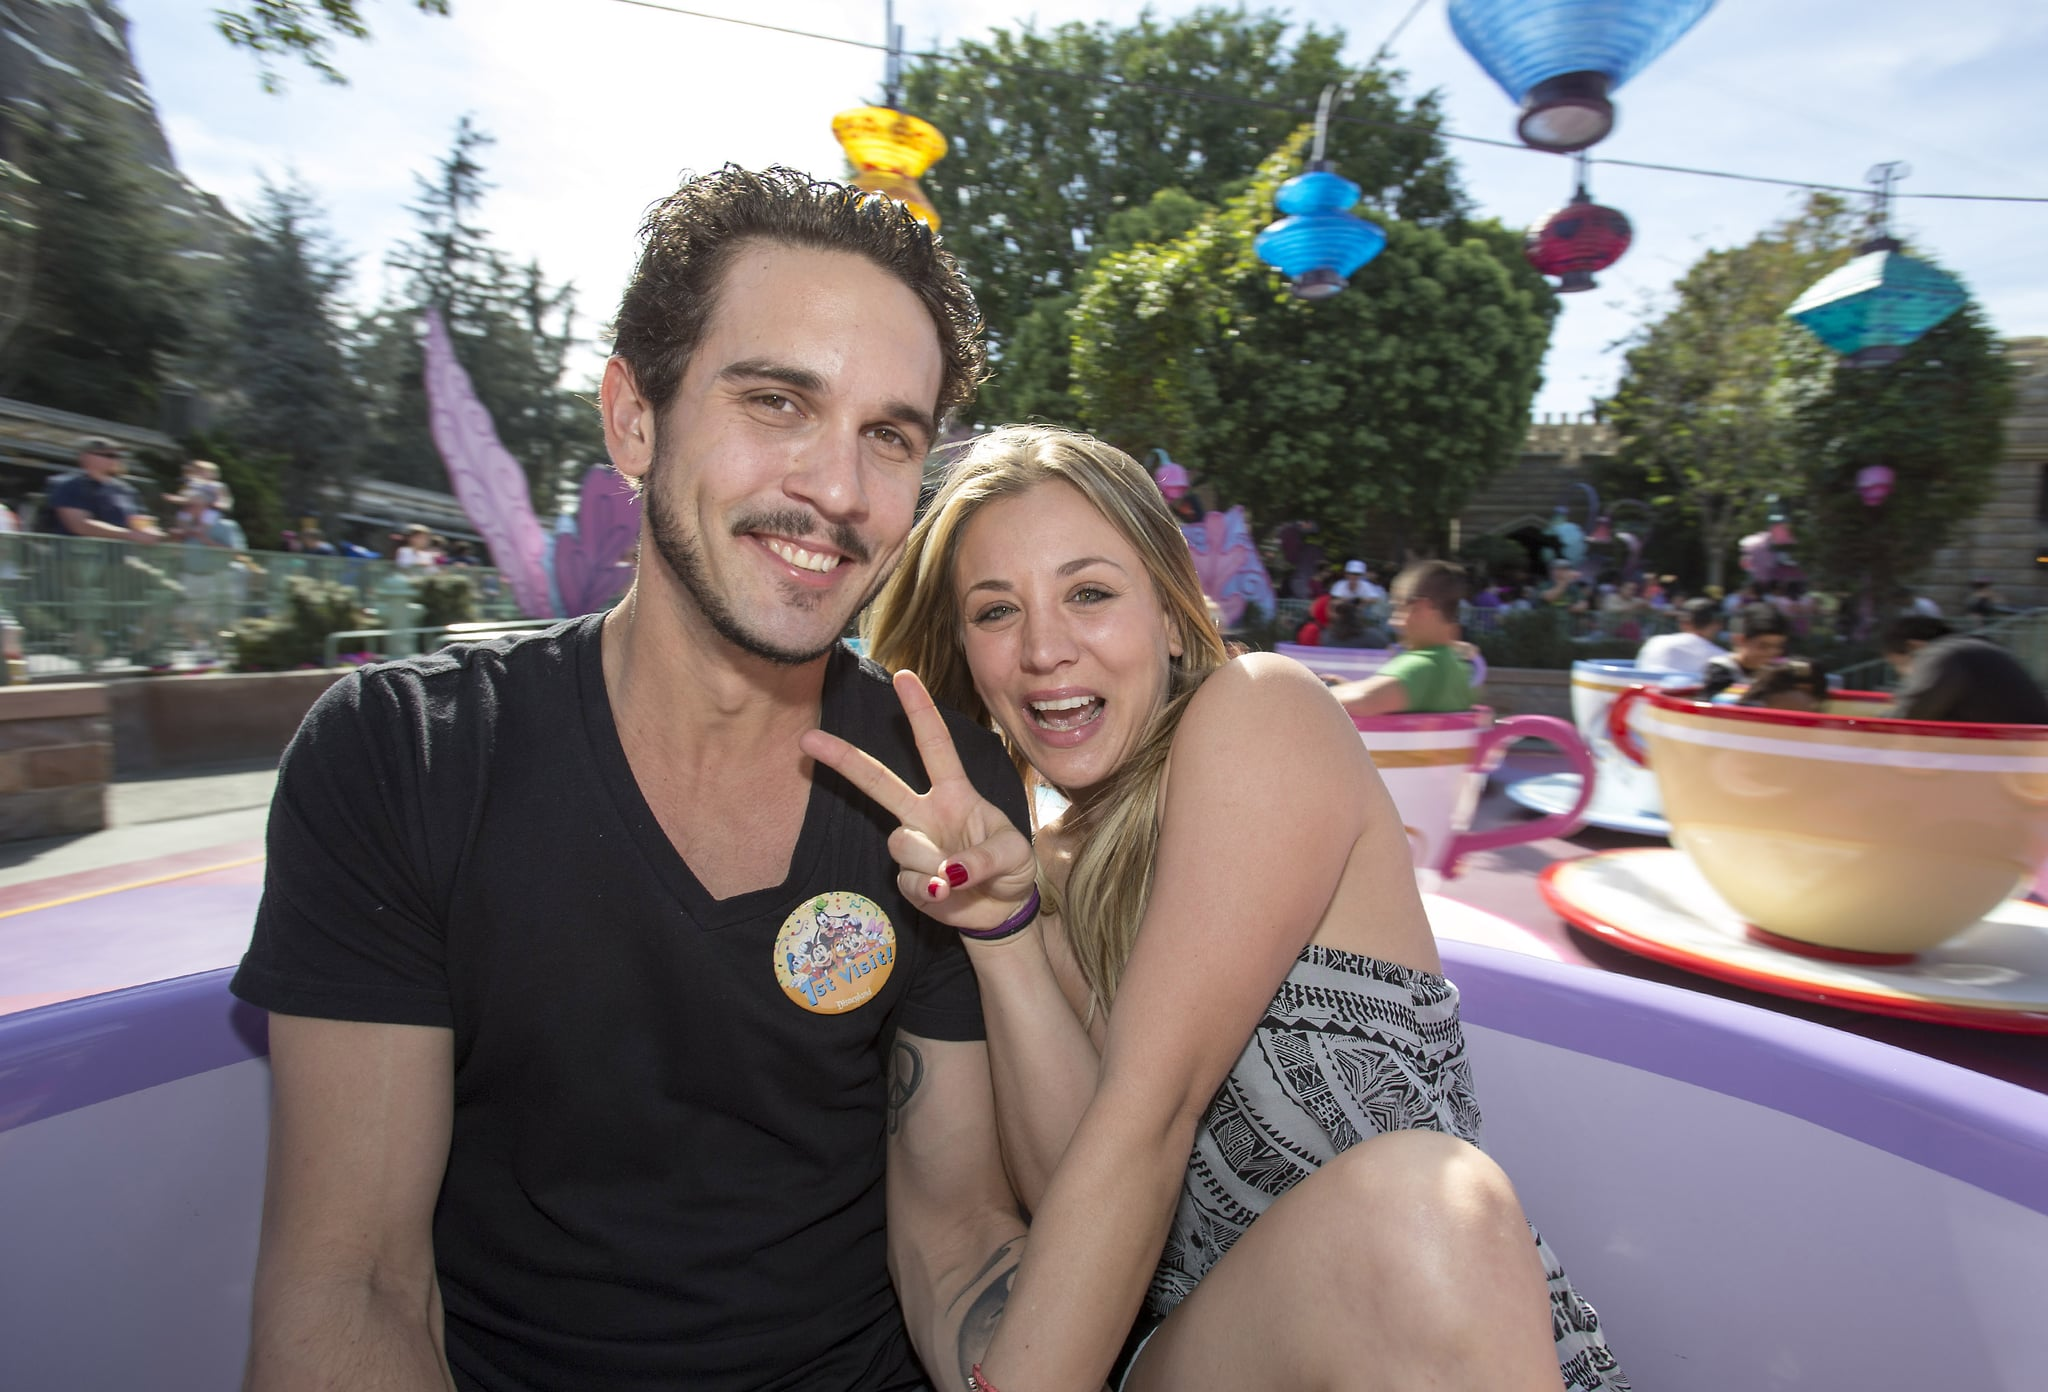 Kaley Cuoco and Ryan Sweeting took a teacup ride at Disneyland in February 2014.